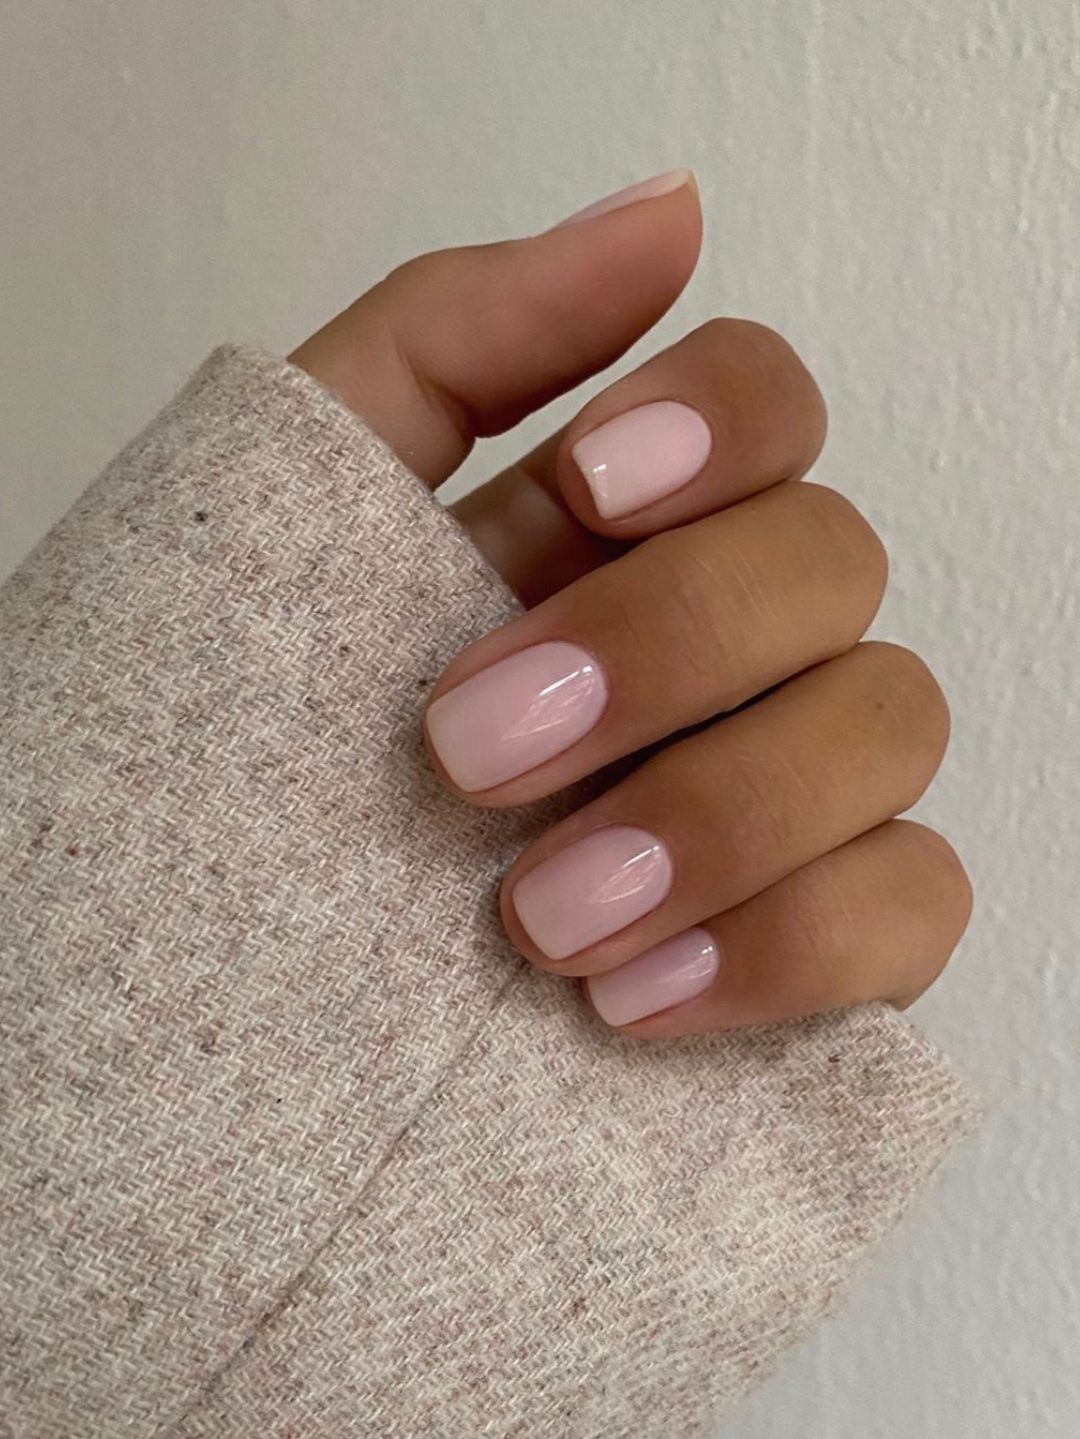 Essie's Latest Nail Polish Collection Is Full Of Celebrity-Approved Pastels